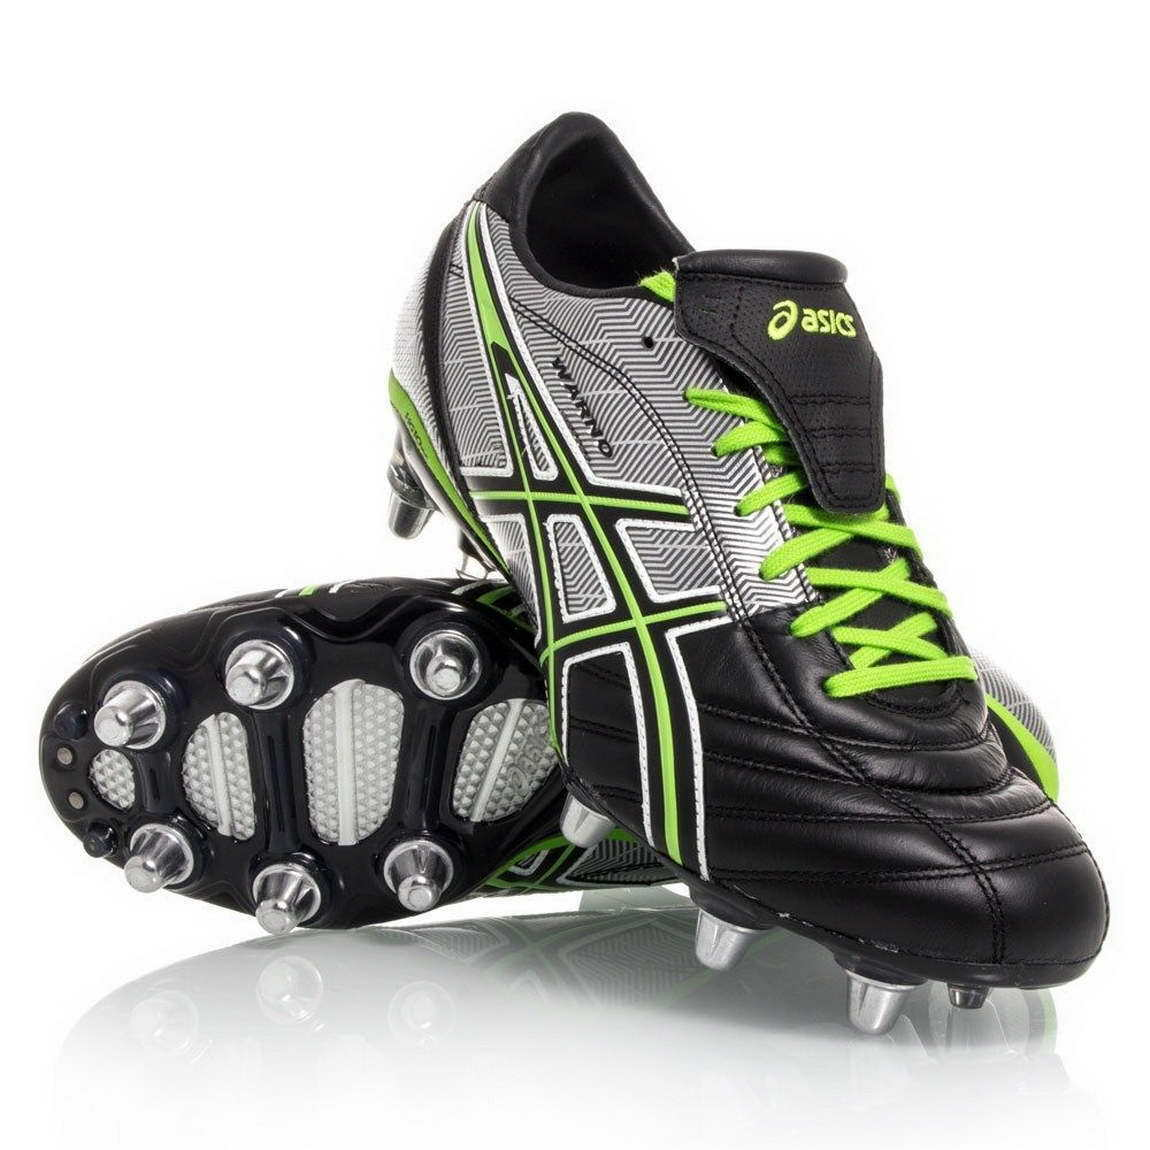 Asics Lethal Warno ST2 Chaussures de Football (9) Noir / / / Herbe / Argent | Mode Attrayant  22d3d2